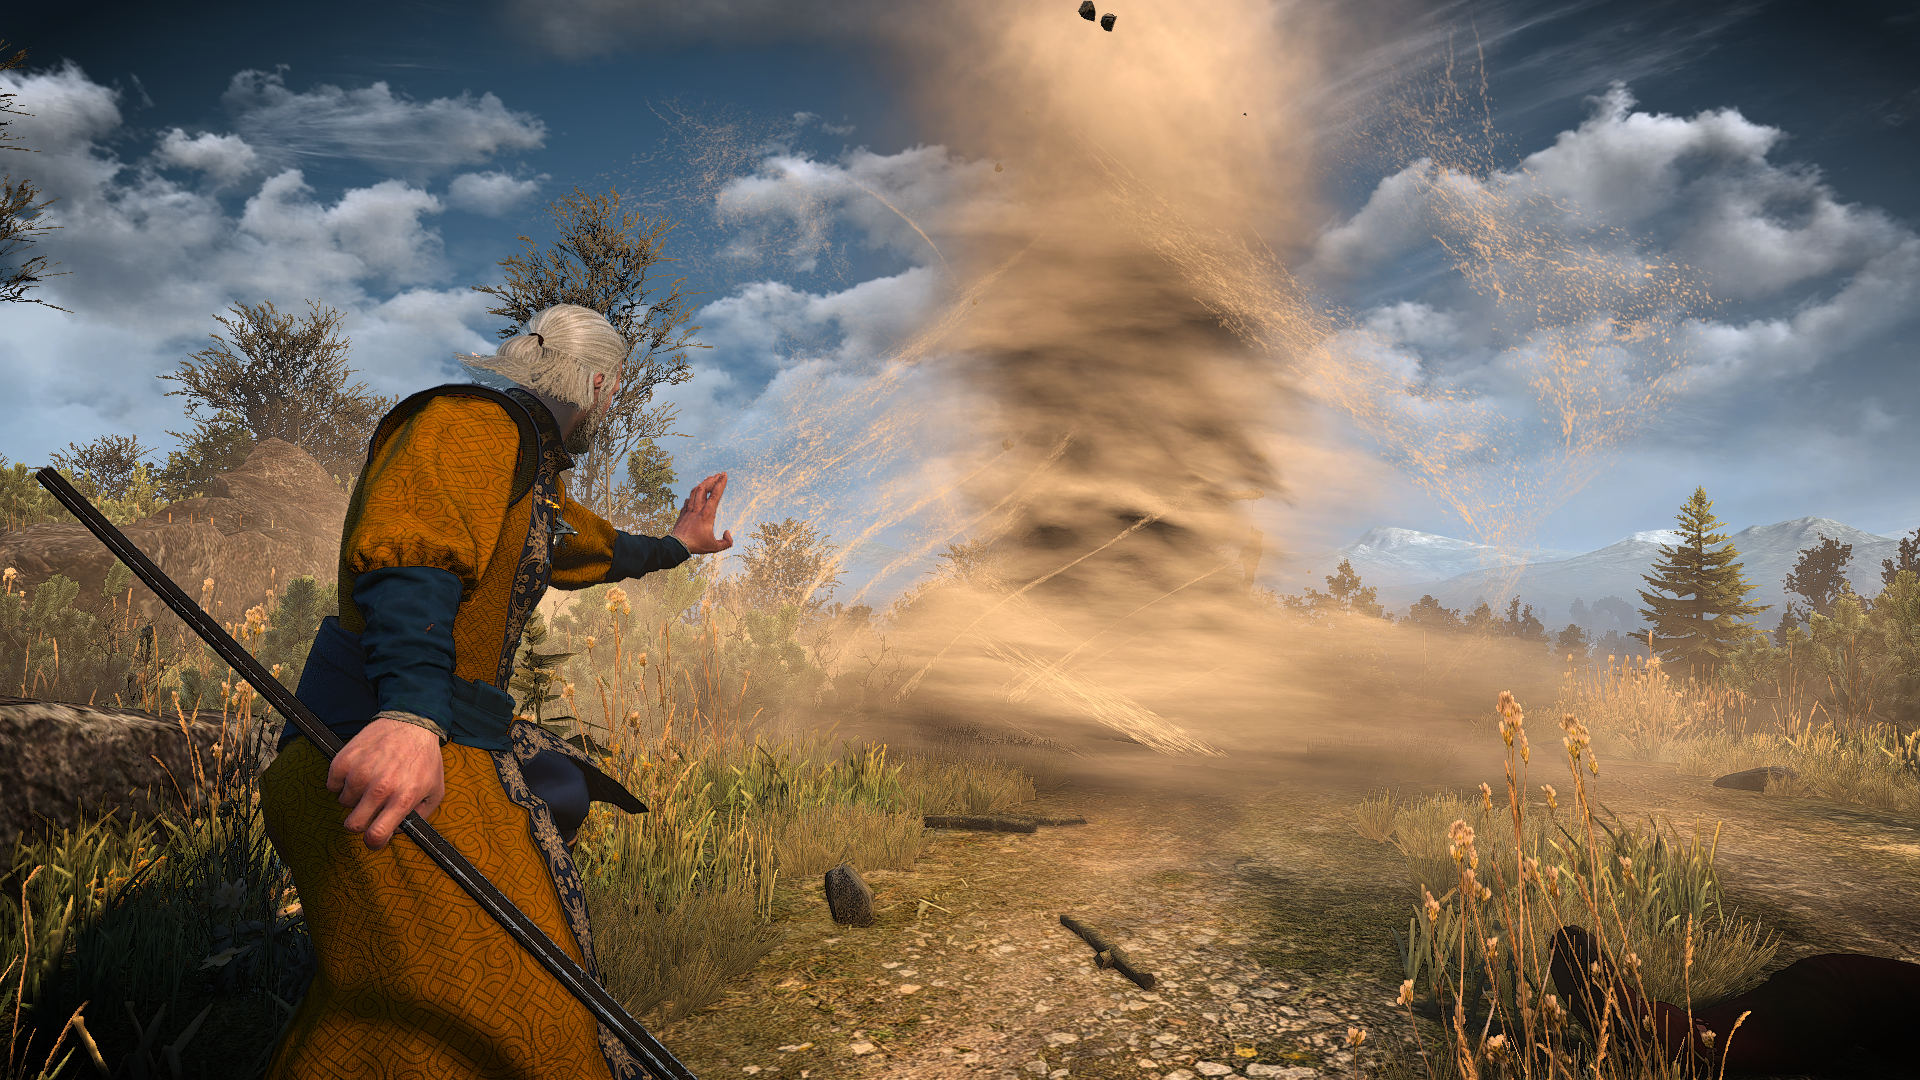 The Witcher 3 Magic Spells Mod Offers New Magic Casting Abilities